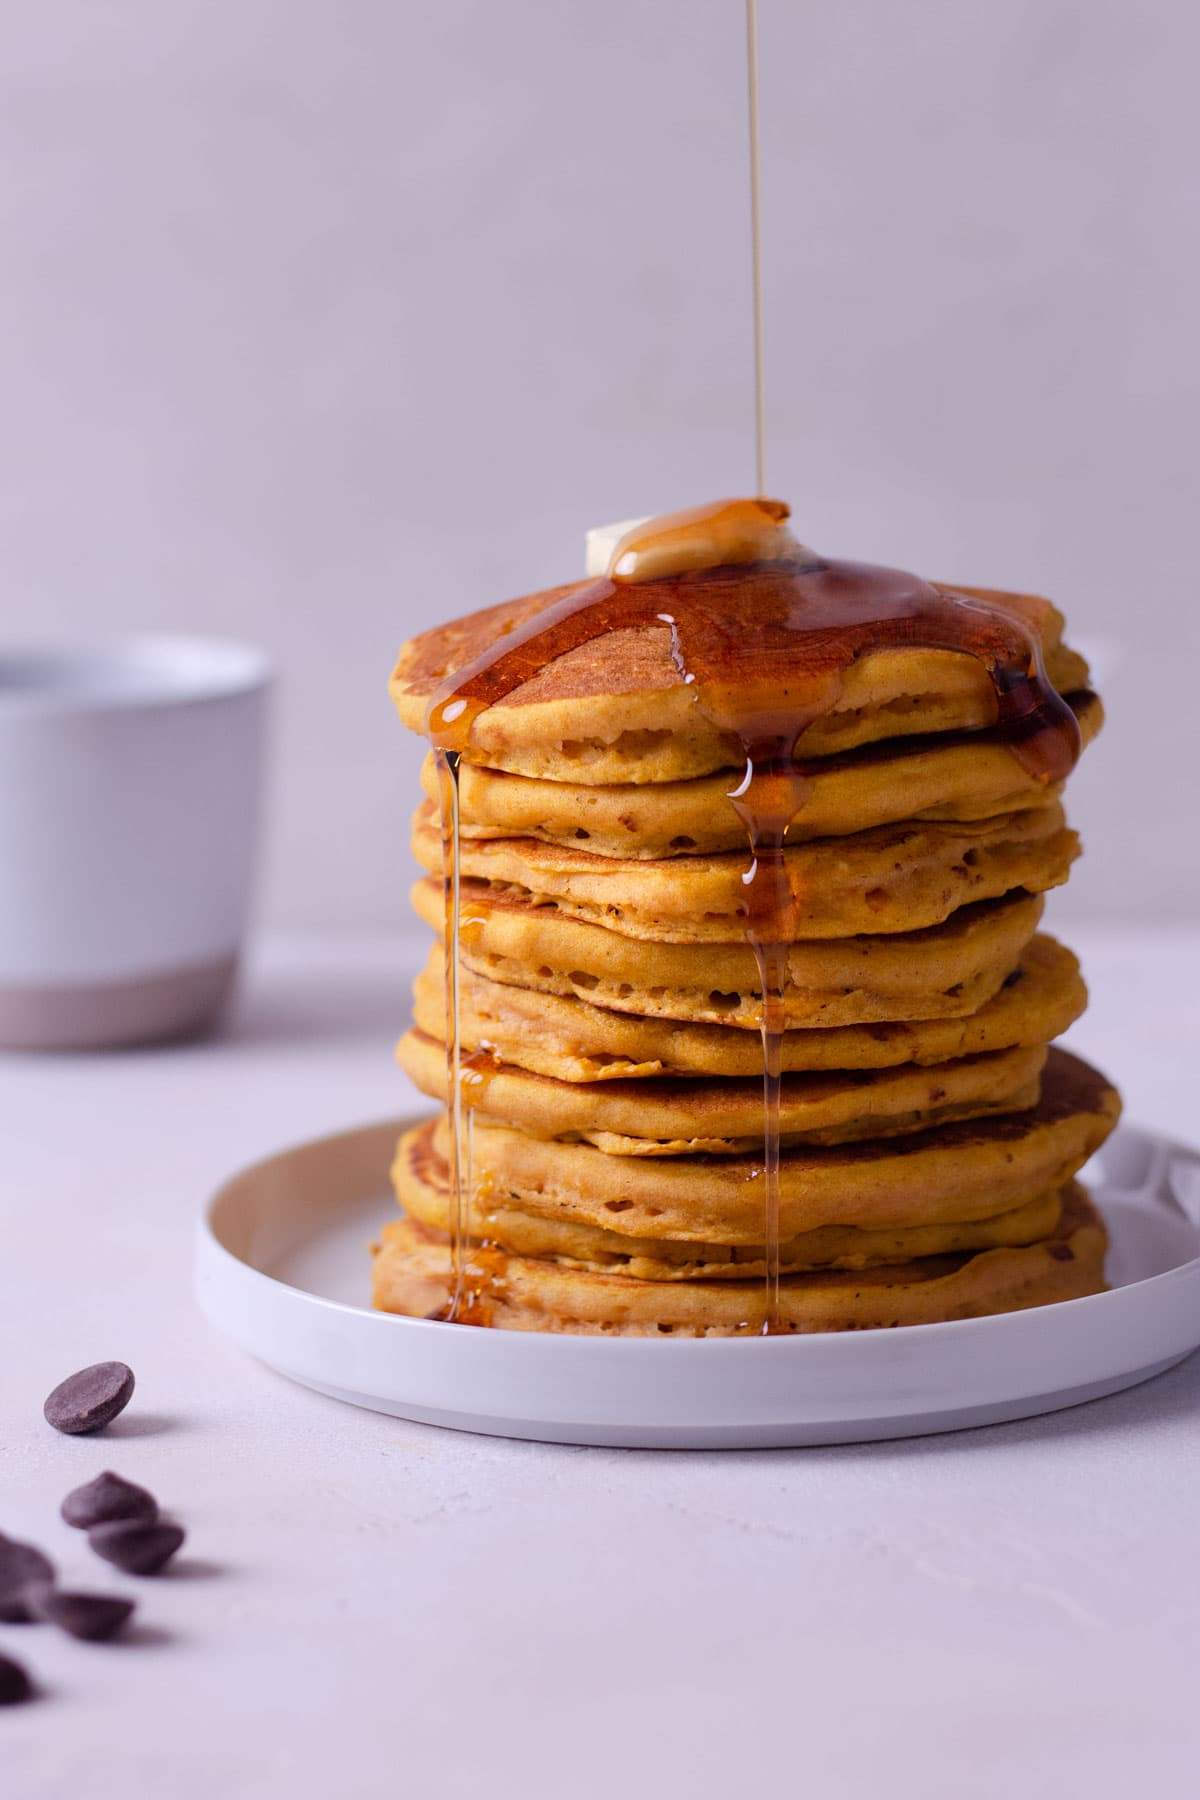 Straight on shot of a high stack of pumpkin chocolate chip pancakes with butter on top and maple syrup dripping down, with a coffee mug in the background.